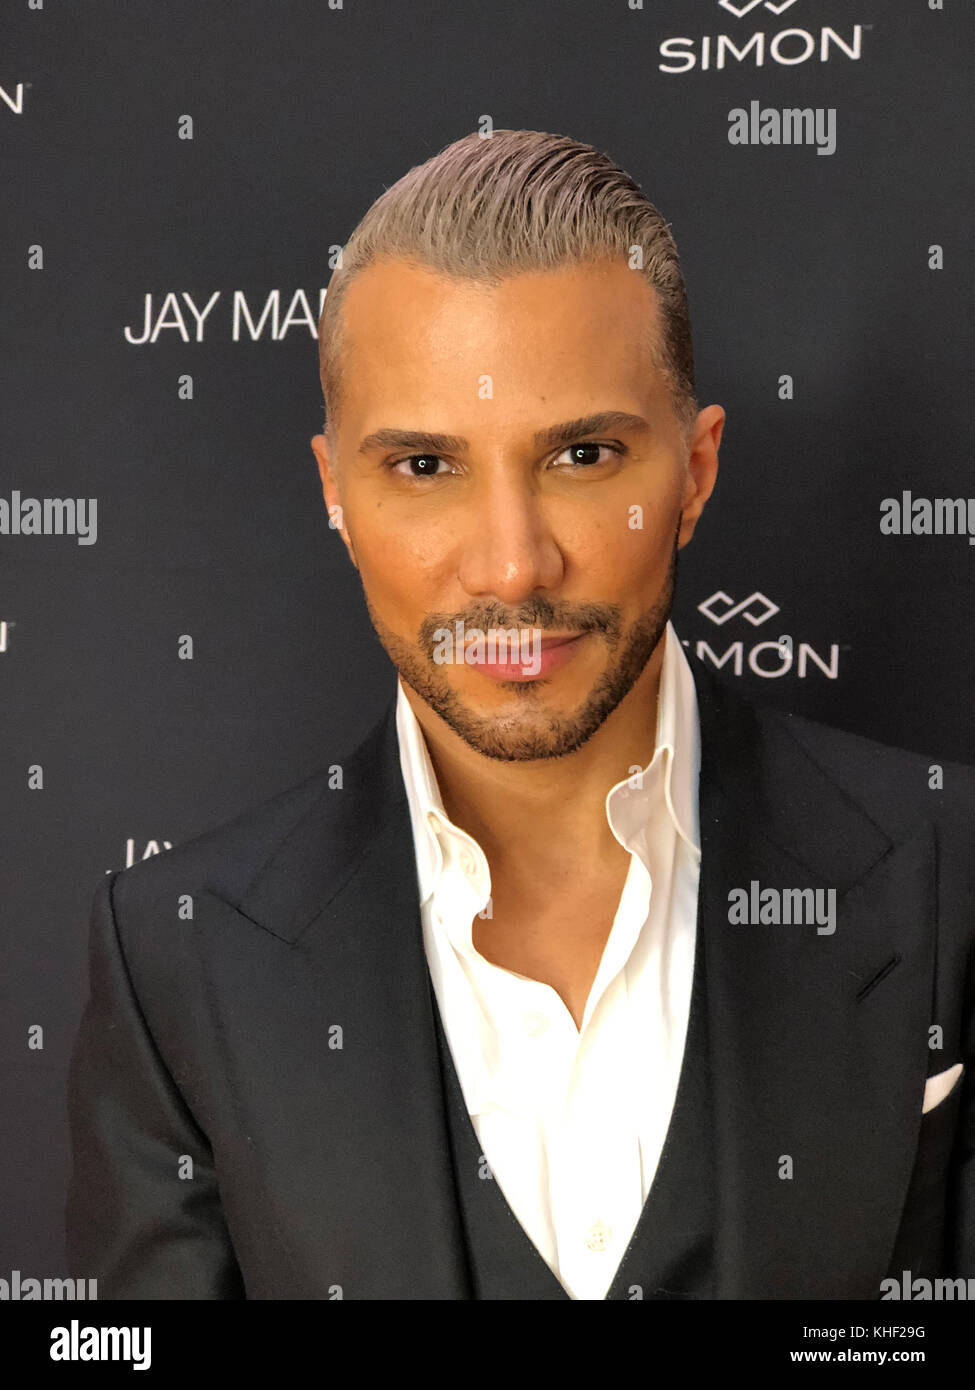 Garden City, New York, USA. 16th Nov, 2017. JAY MANUEL, 45, makeup artist and stylist, appears at Roosevelt Field Mall to celebrate the Grand Opening and ...